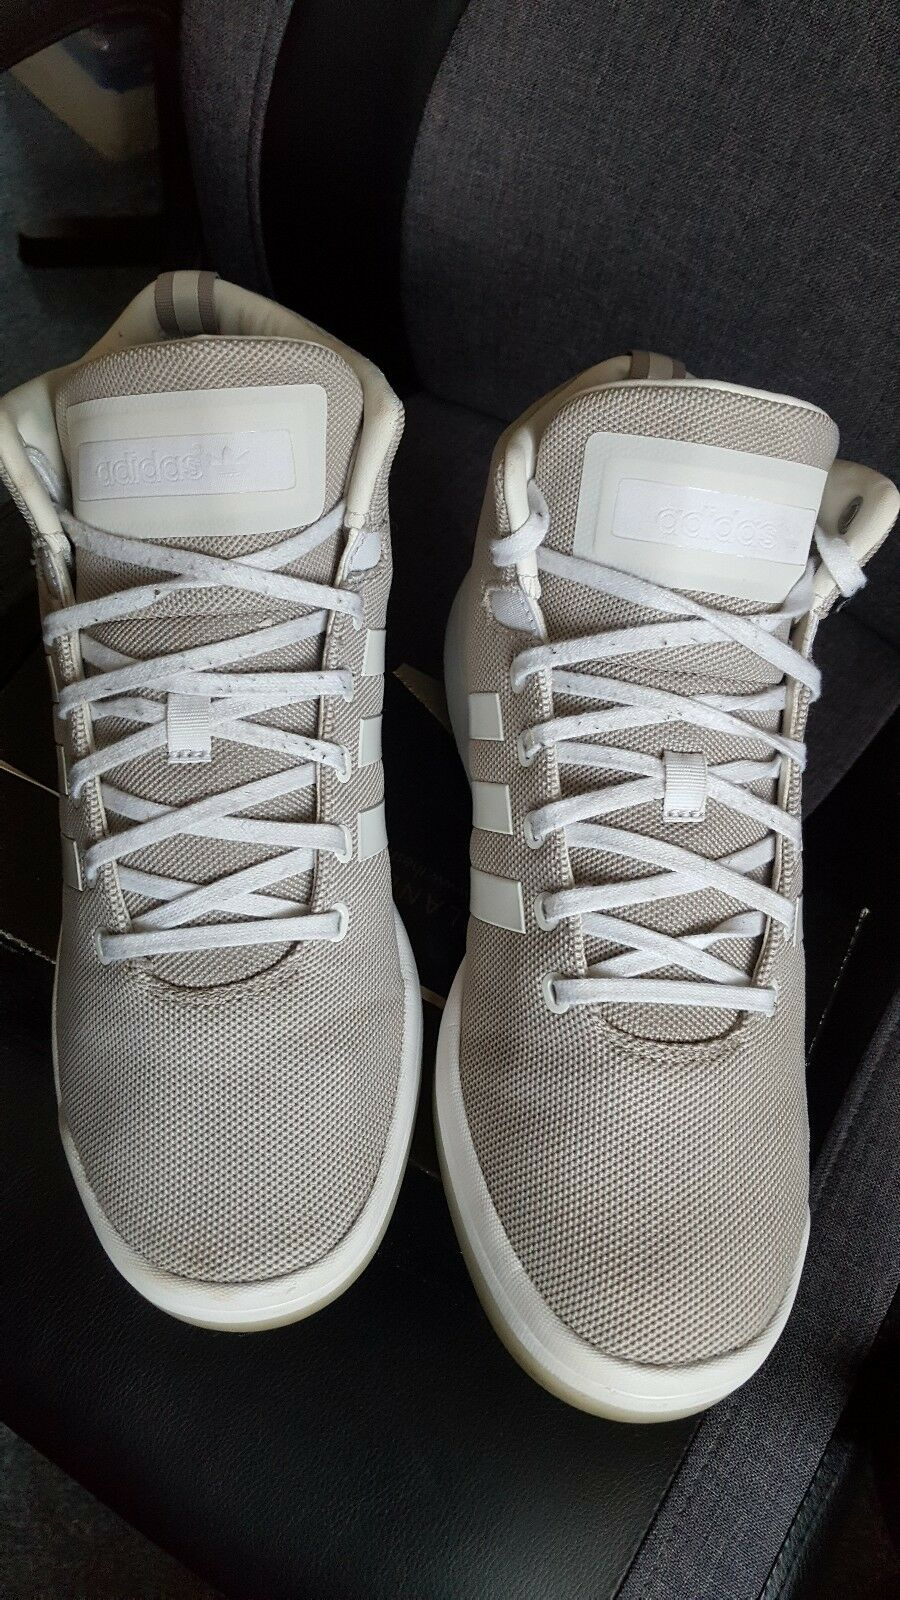 adidas mens sneakers size 8 grey & white Seasonal clearance sale